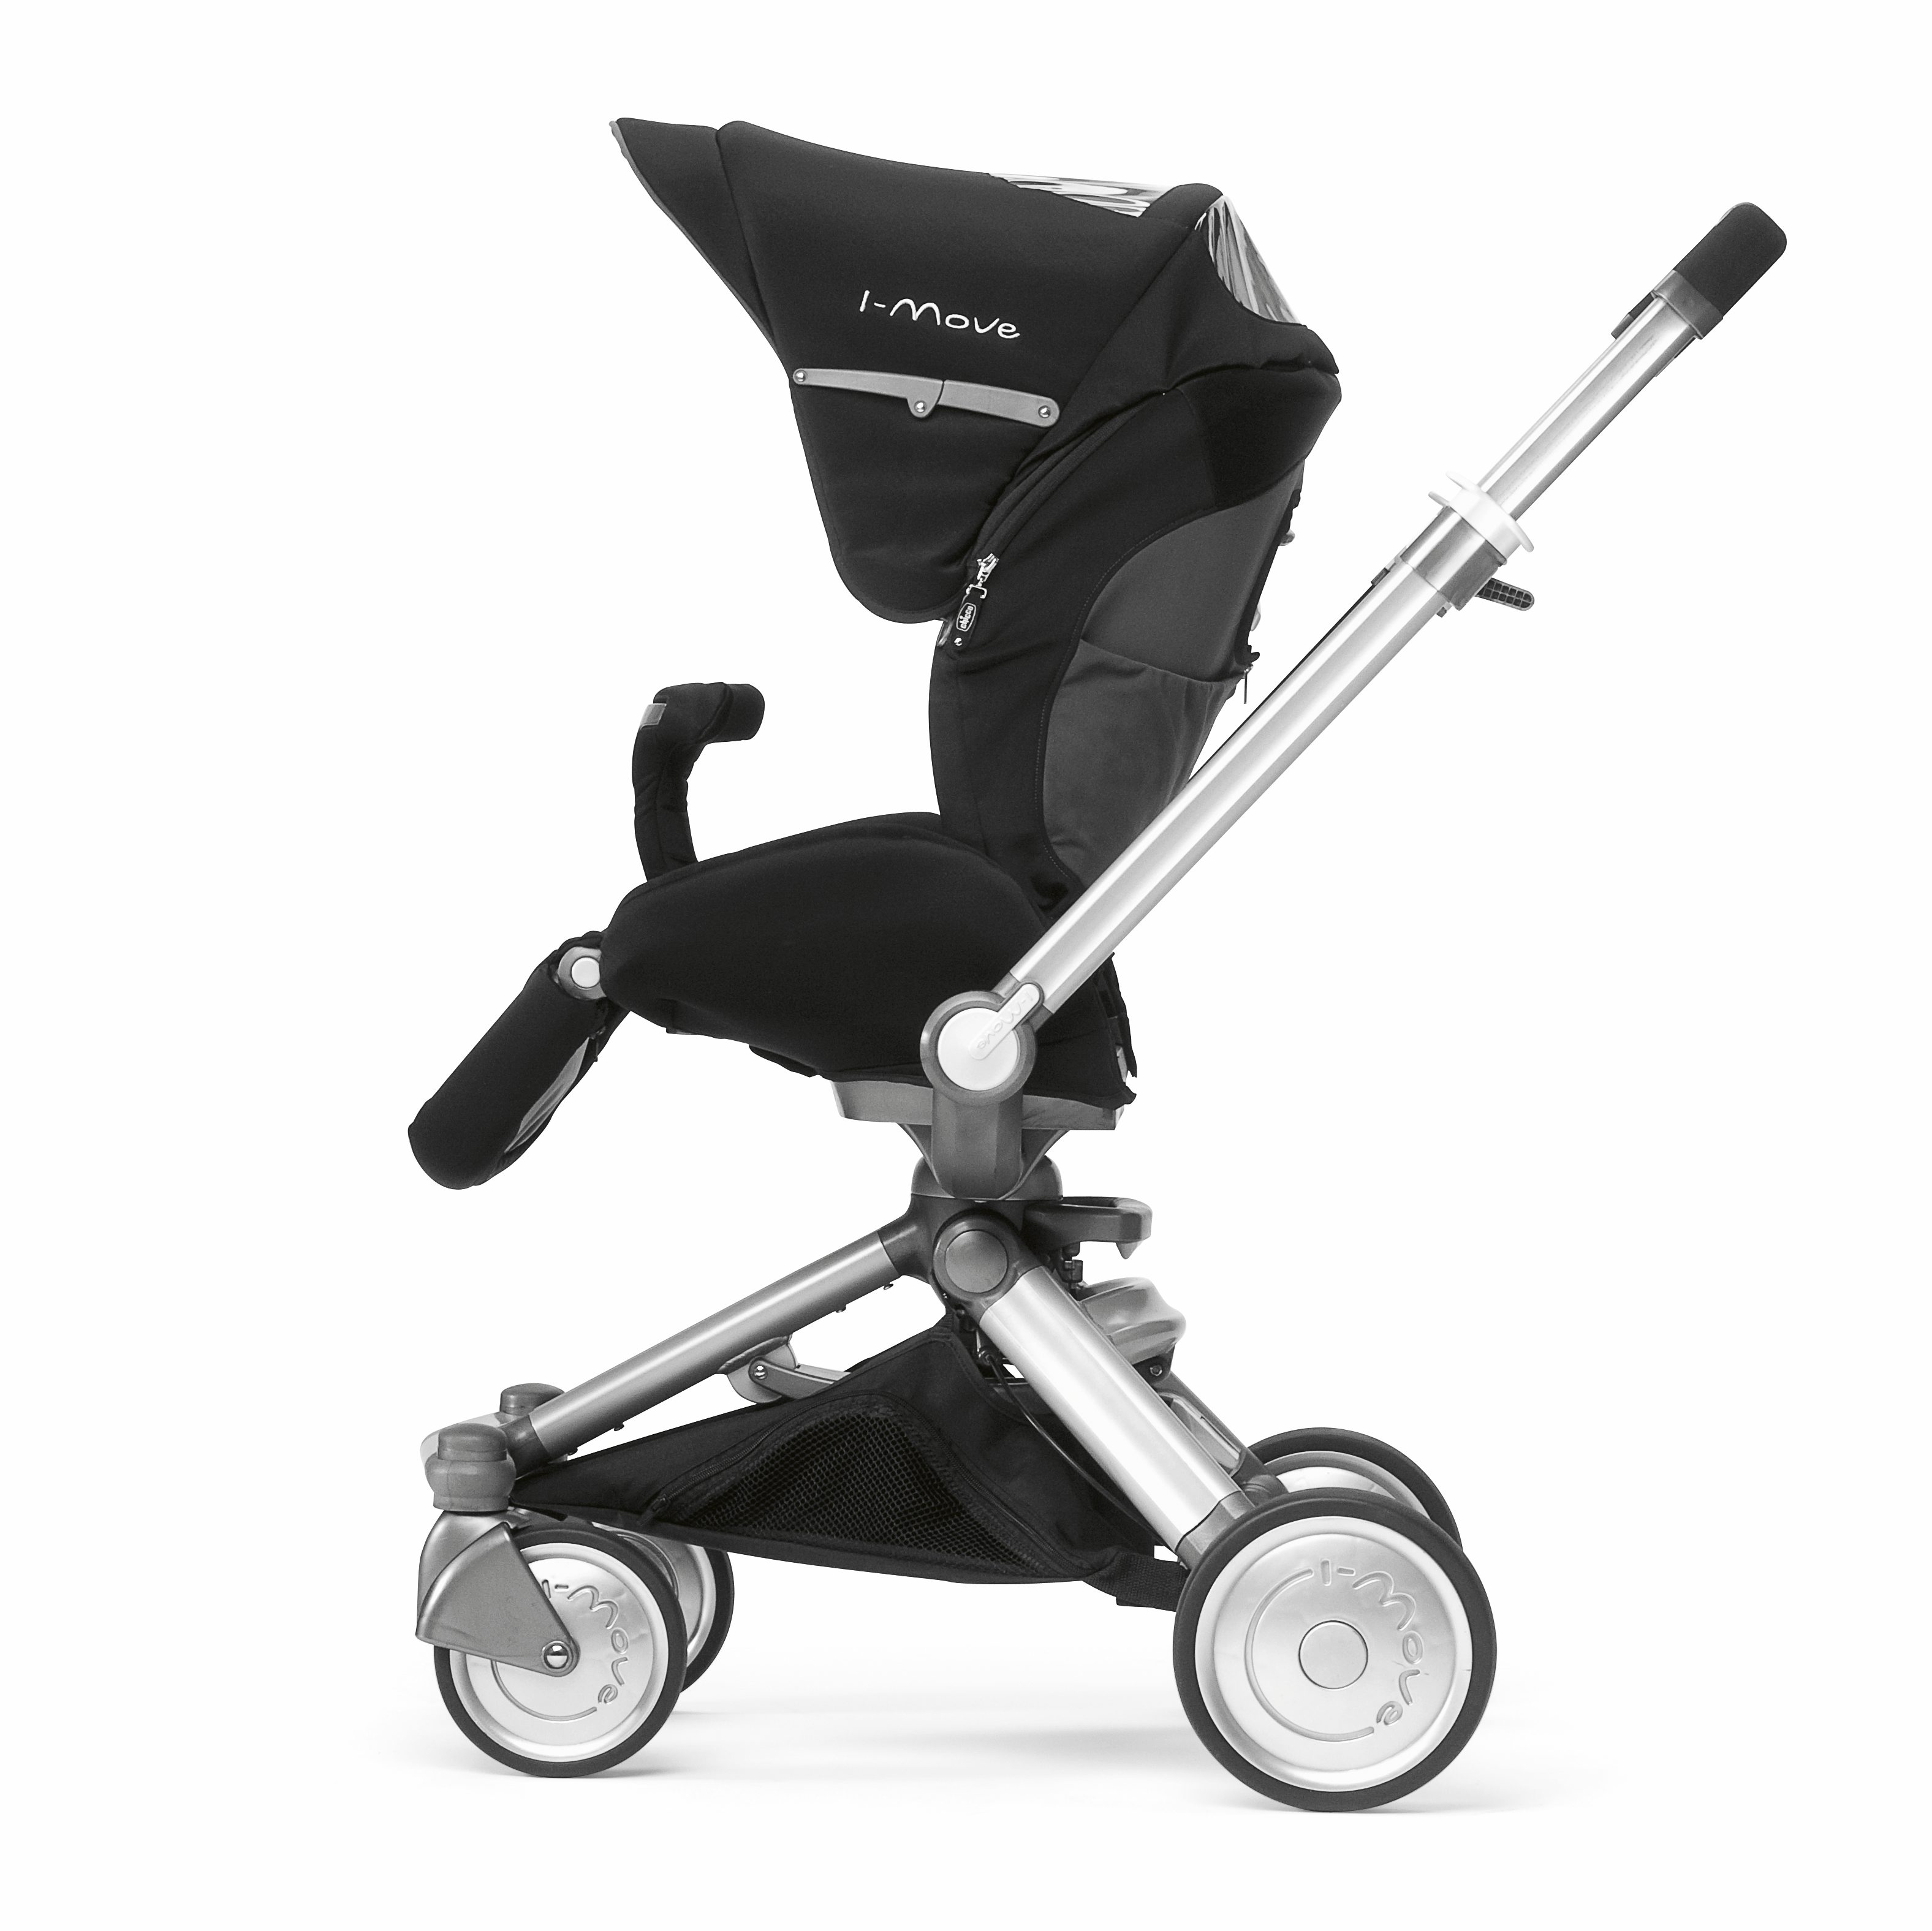 new Chicco i-move buggy